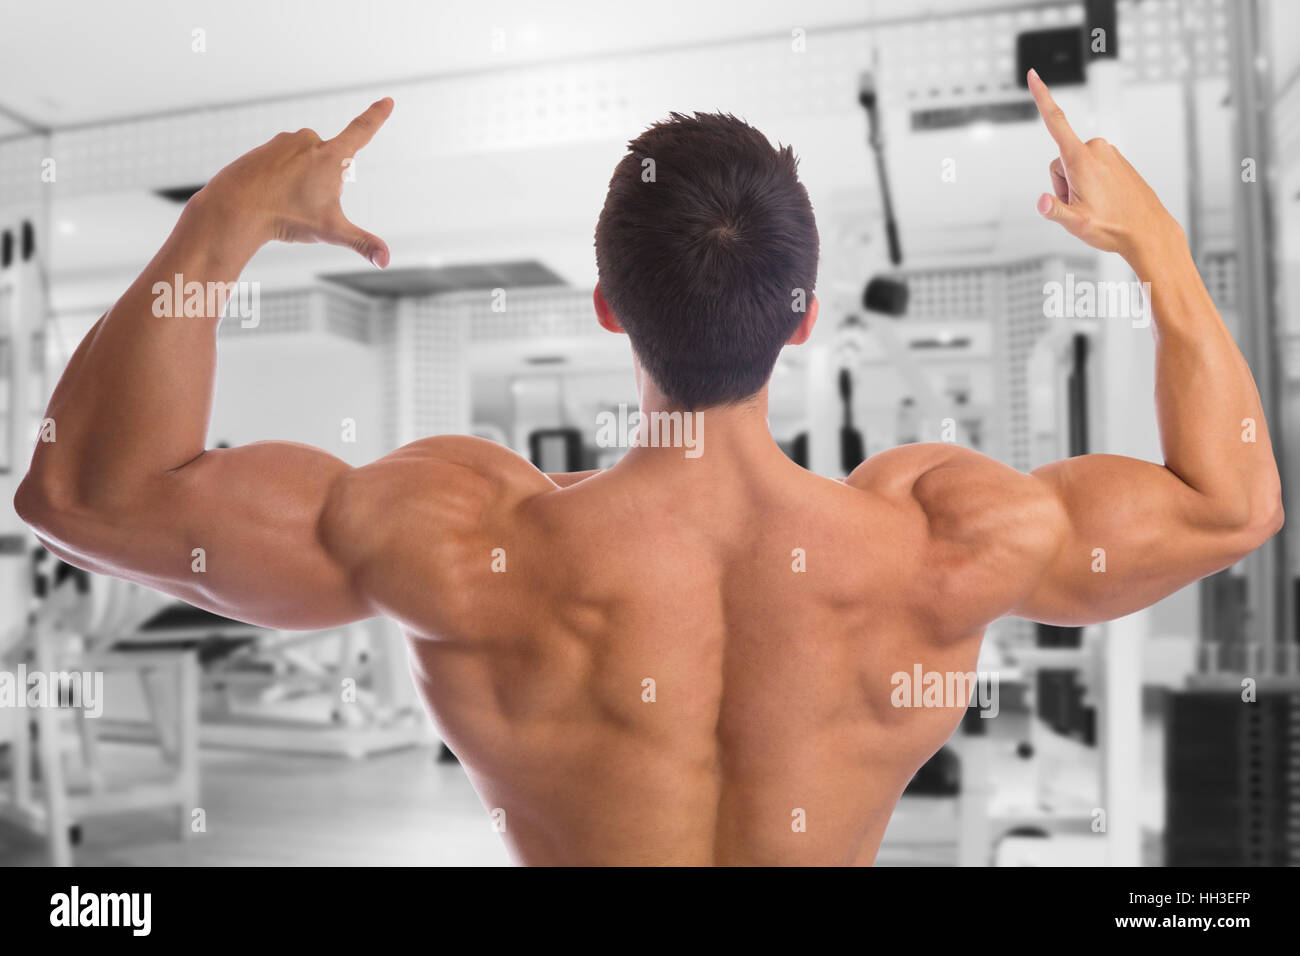 How to pump the broadest muscles 89